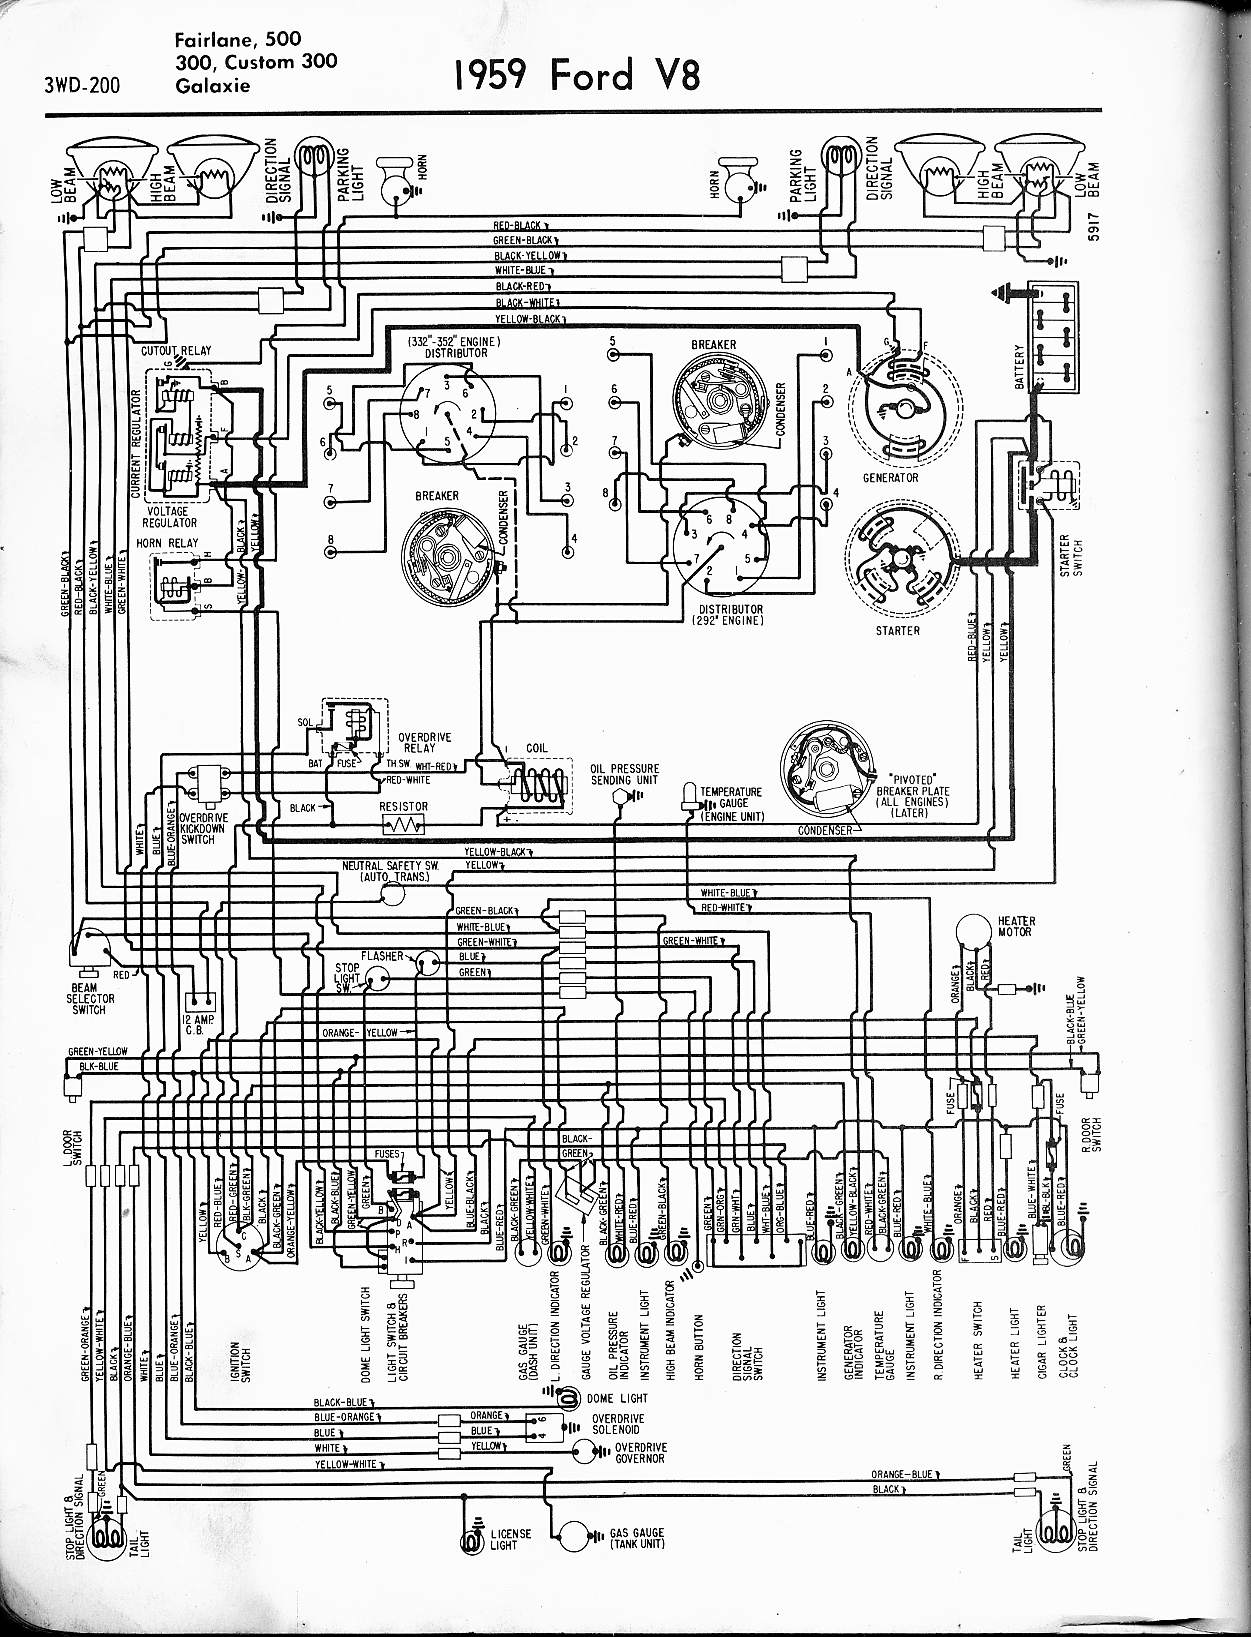 Marvelous 57 65 Ford Wiring Diagrams Wiring Digital Resources Remcakbiperorg